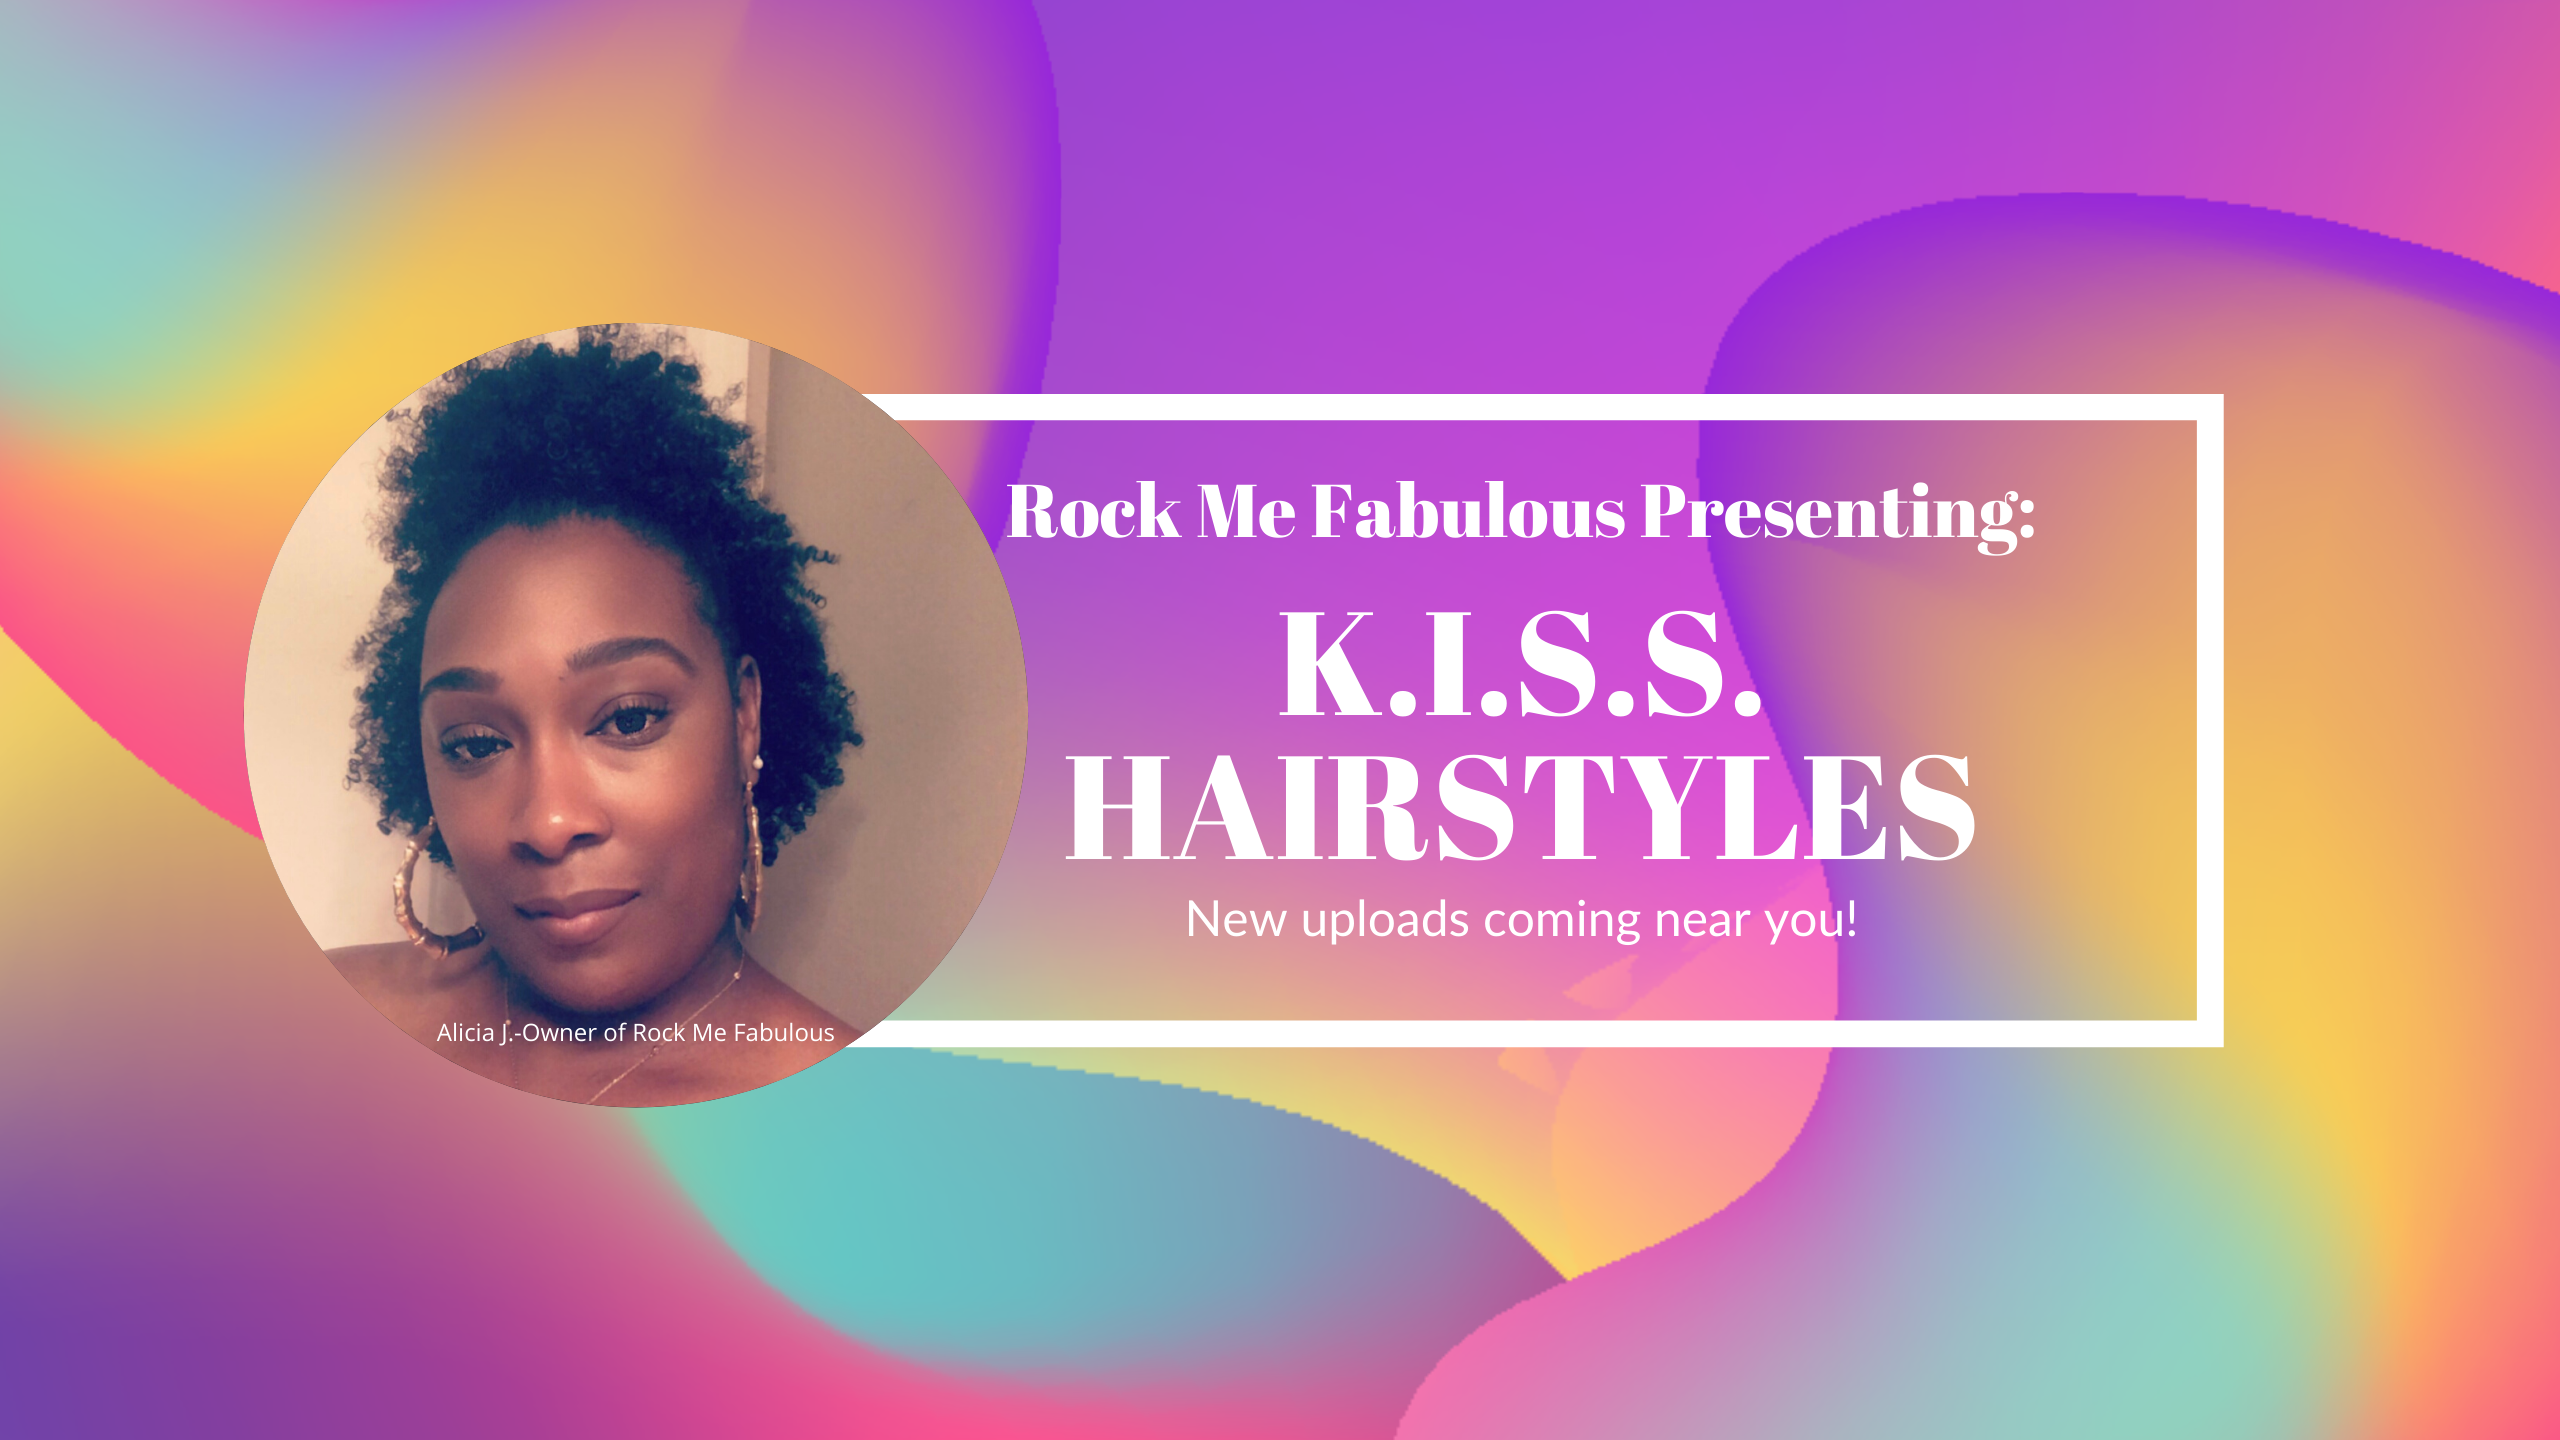 RMF KISS Hairstyles Youtube Channel Art.